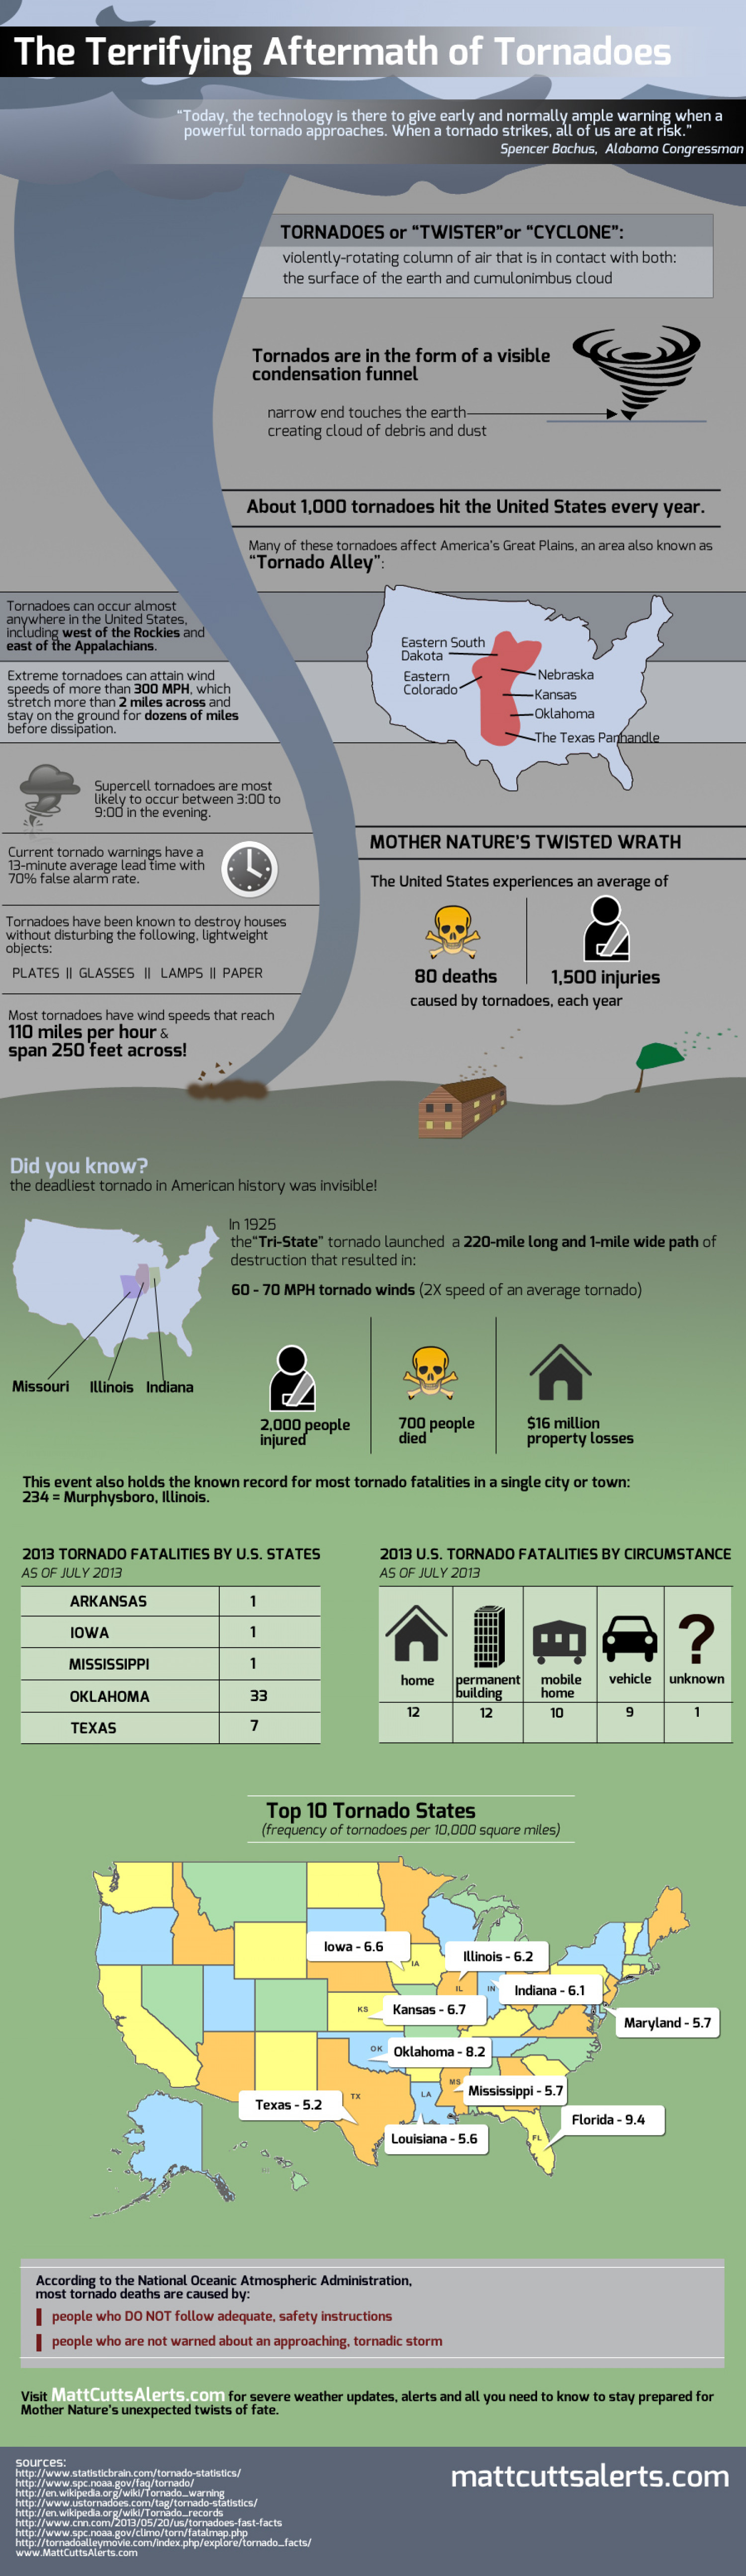 The Terrifying Aftermath of Tornadoes Infographic